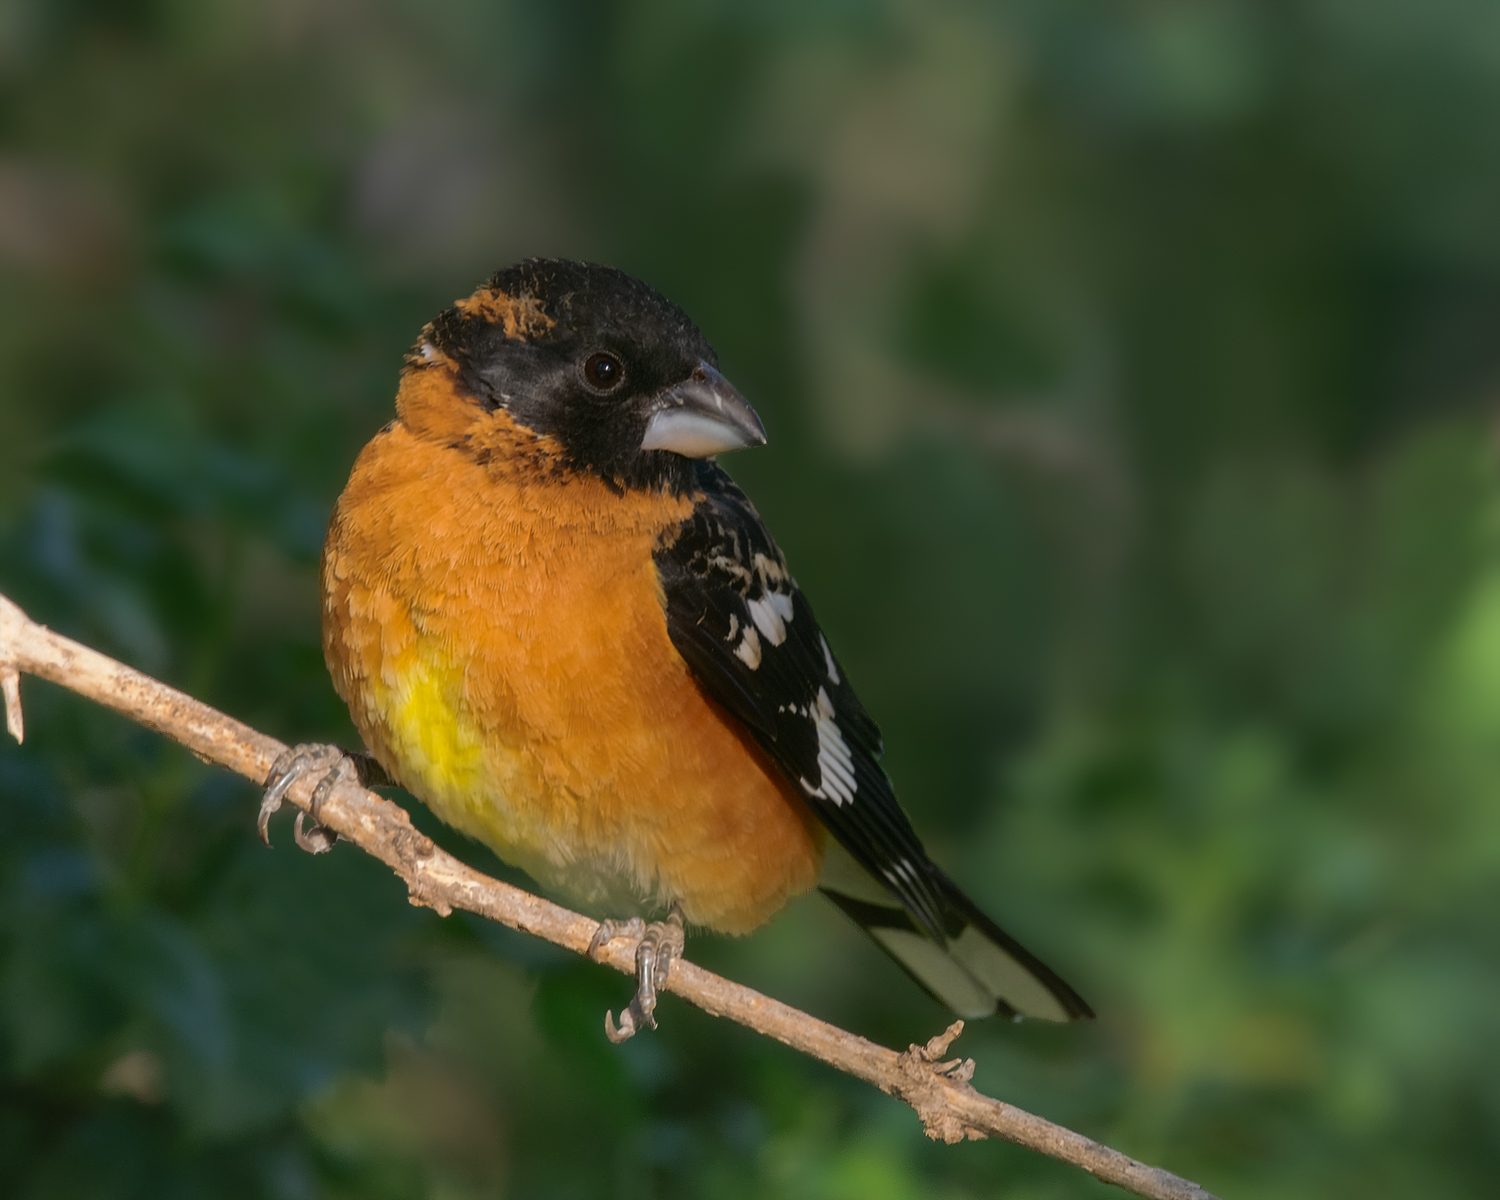 Black-beaked Grosbeak, Patagonia (AZ), April 2011